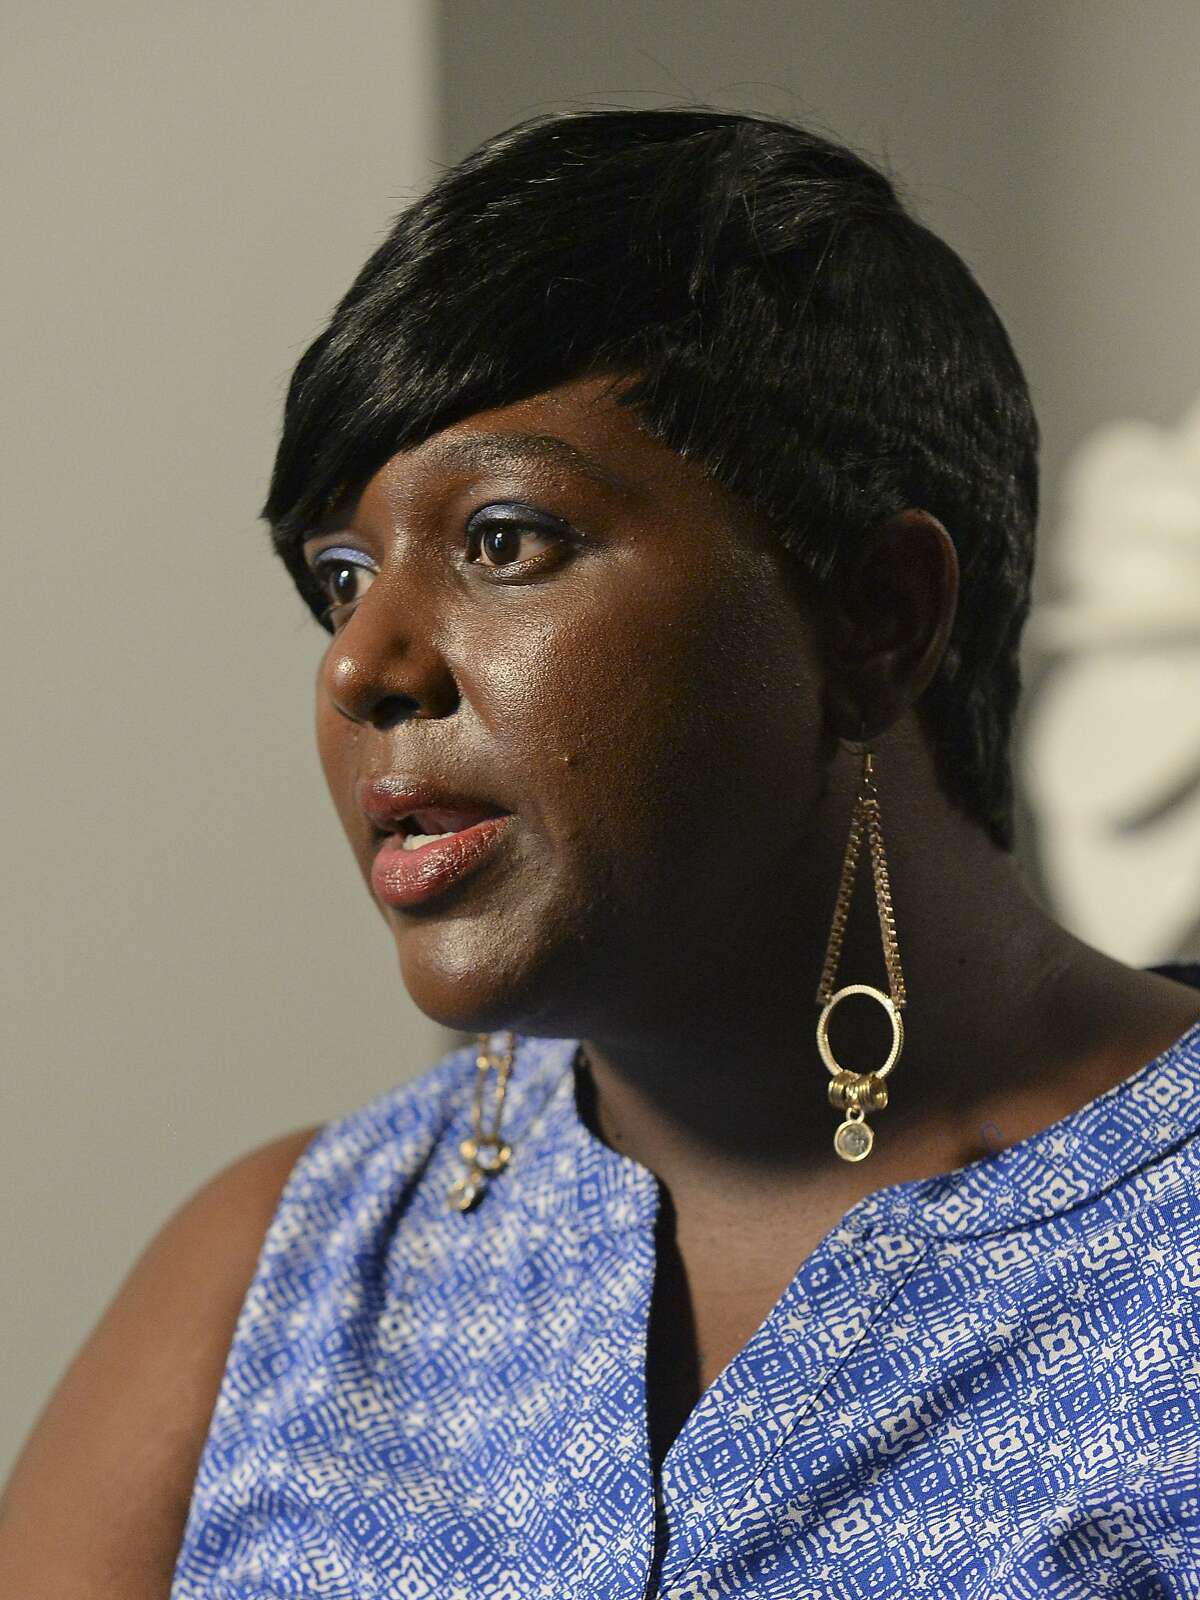 Quinyetta McMillon, the mother of Alton Sterling's 15-year-old son, Cameron Sterling, speaks during an interview in Baton Rouge, La., Friday, July 8, 2016. Alton Sterling, 37, was fatally shot Tuesday, July 5, in Baton Rouge, during a struggle with two police officers outside a convenience store. Sterling was black; both officers are white. (AP Photo/Hilary Scheinuk)